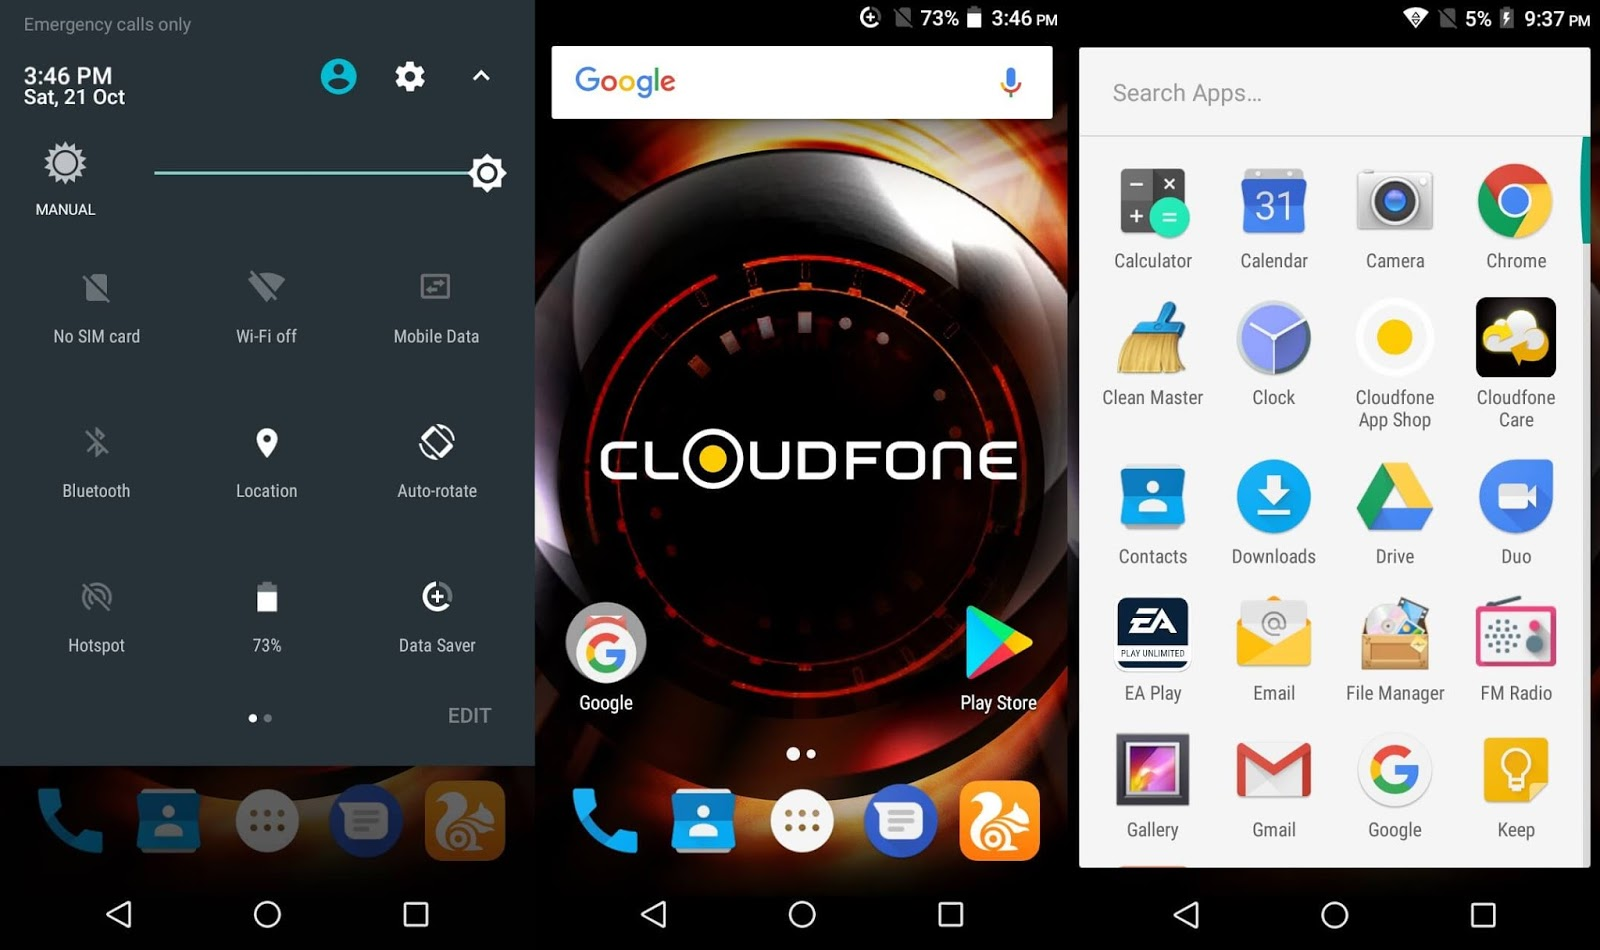 Cloudfone Excite Prime 2's Software